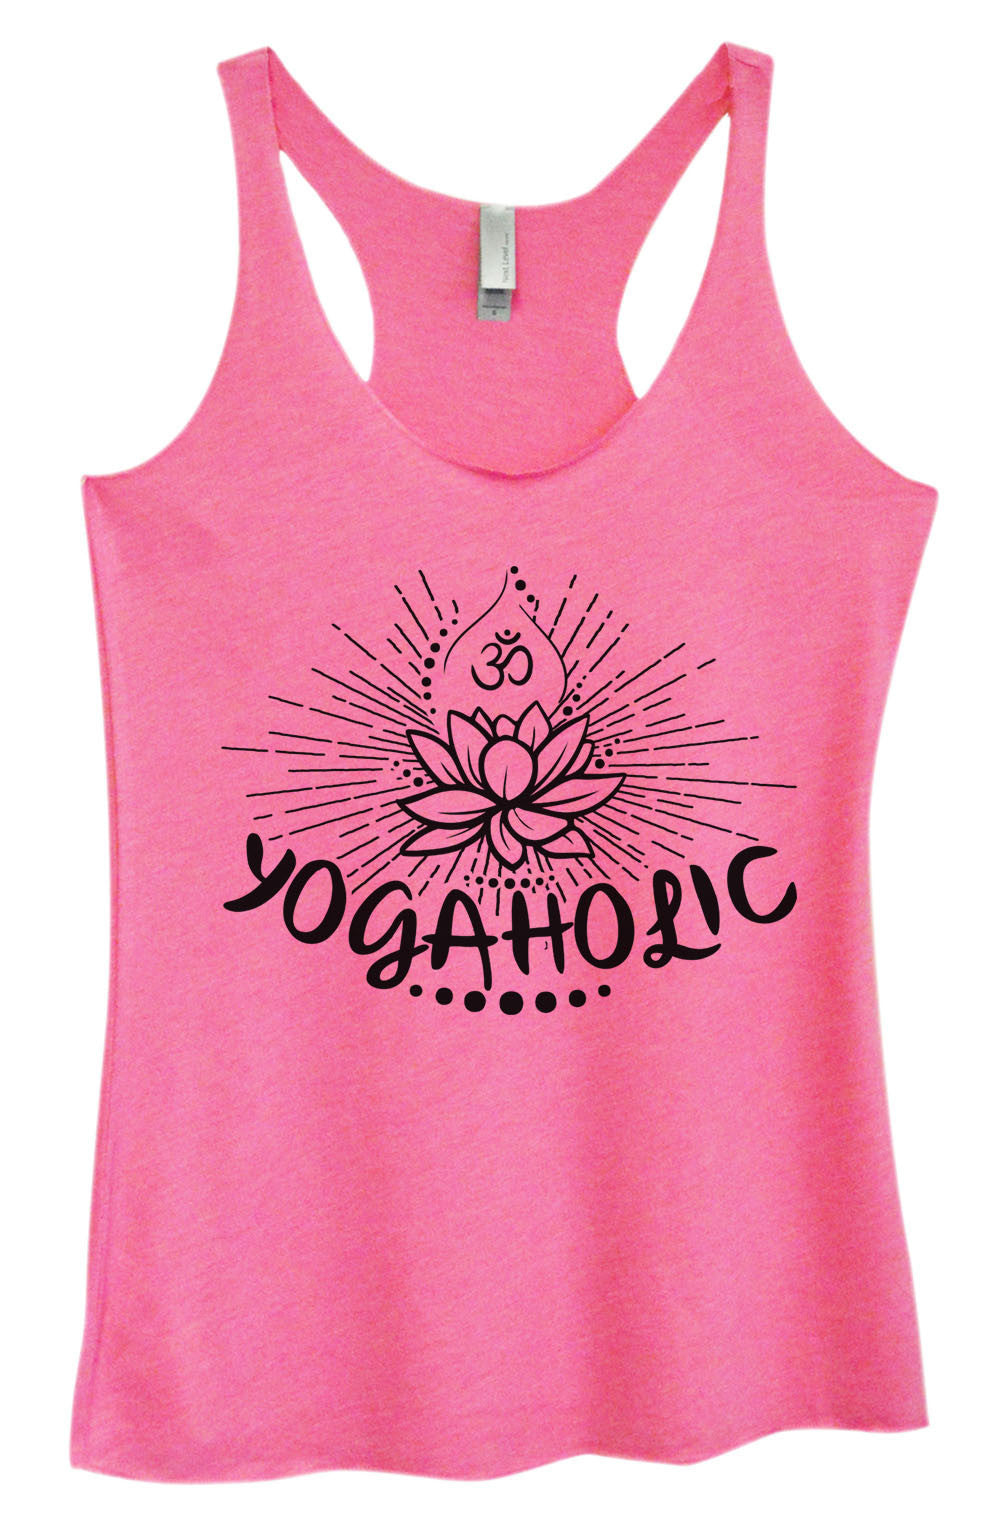 Womens Fashion Triblend Tank Top - Yogaholic - Tri-1017 - Funny Shirts Tank Tops Burnouts and Triblends  - 1